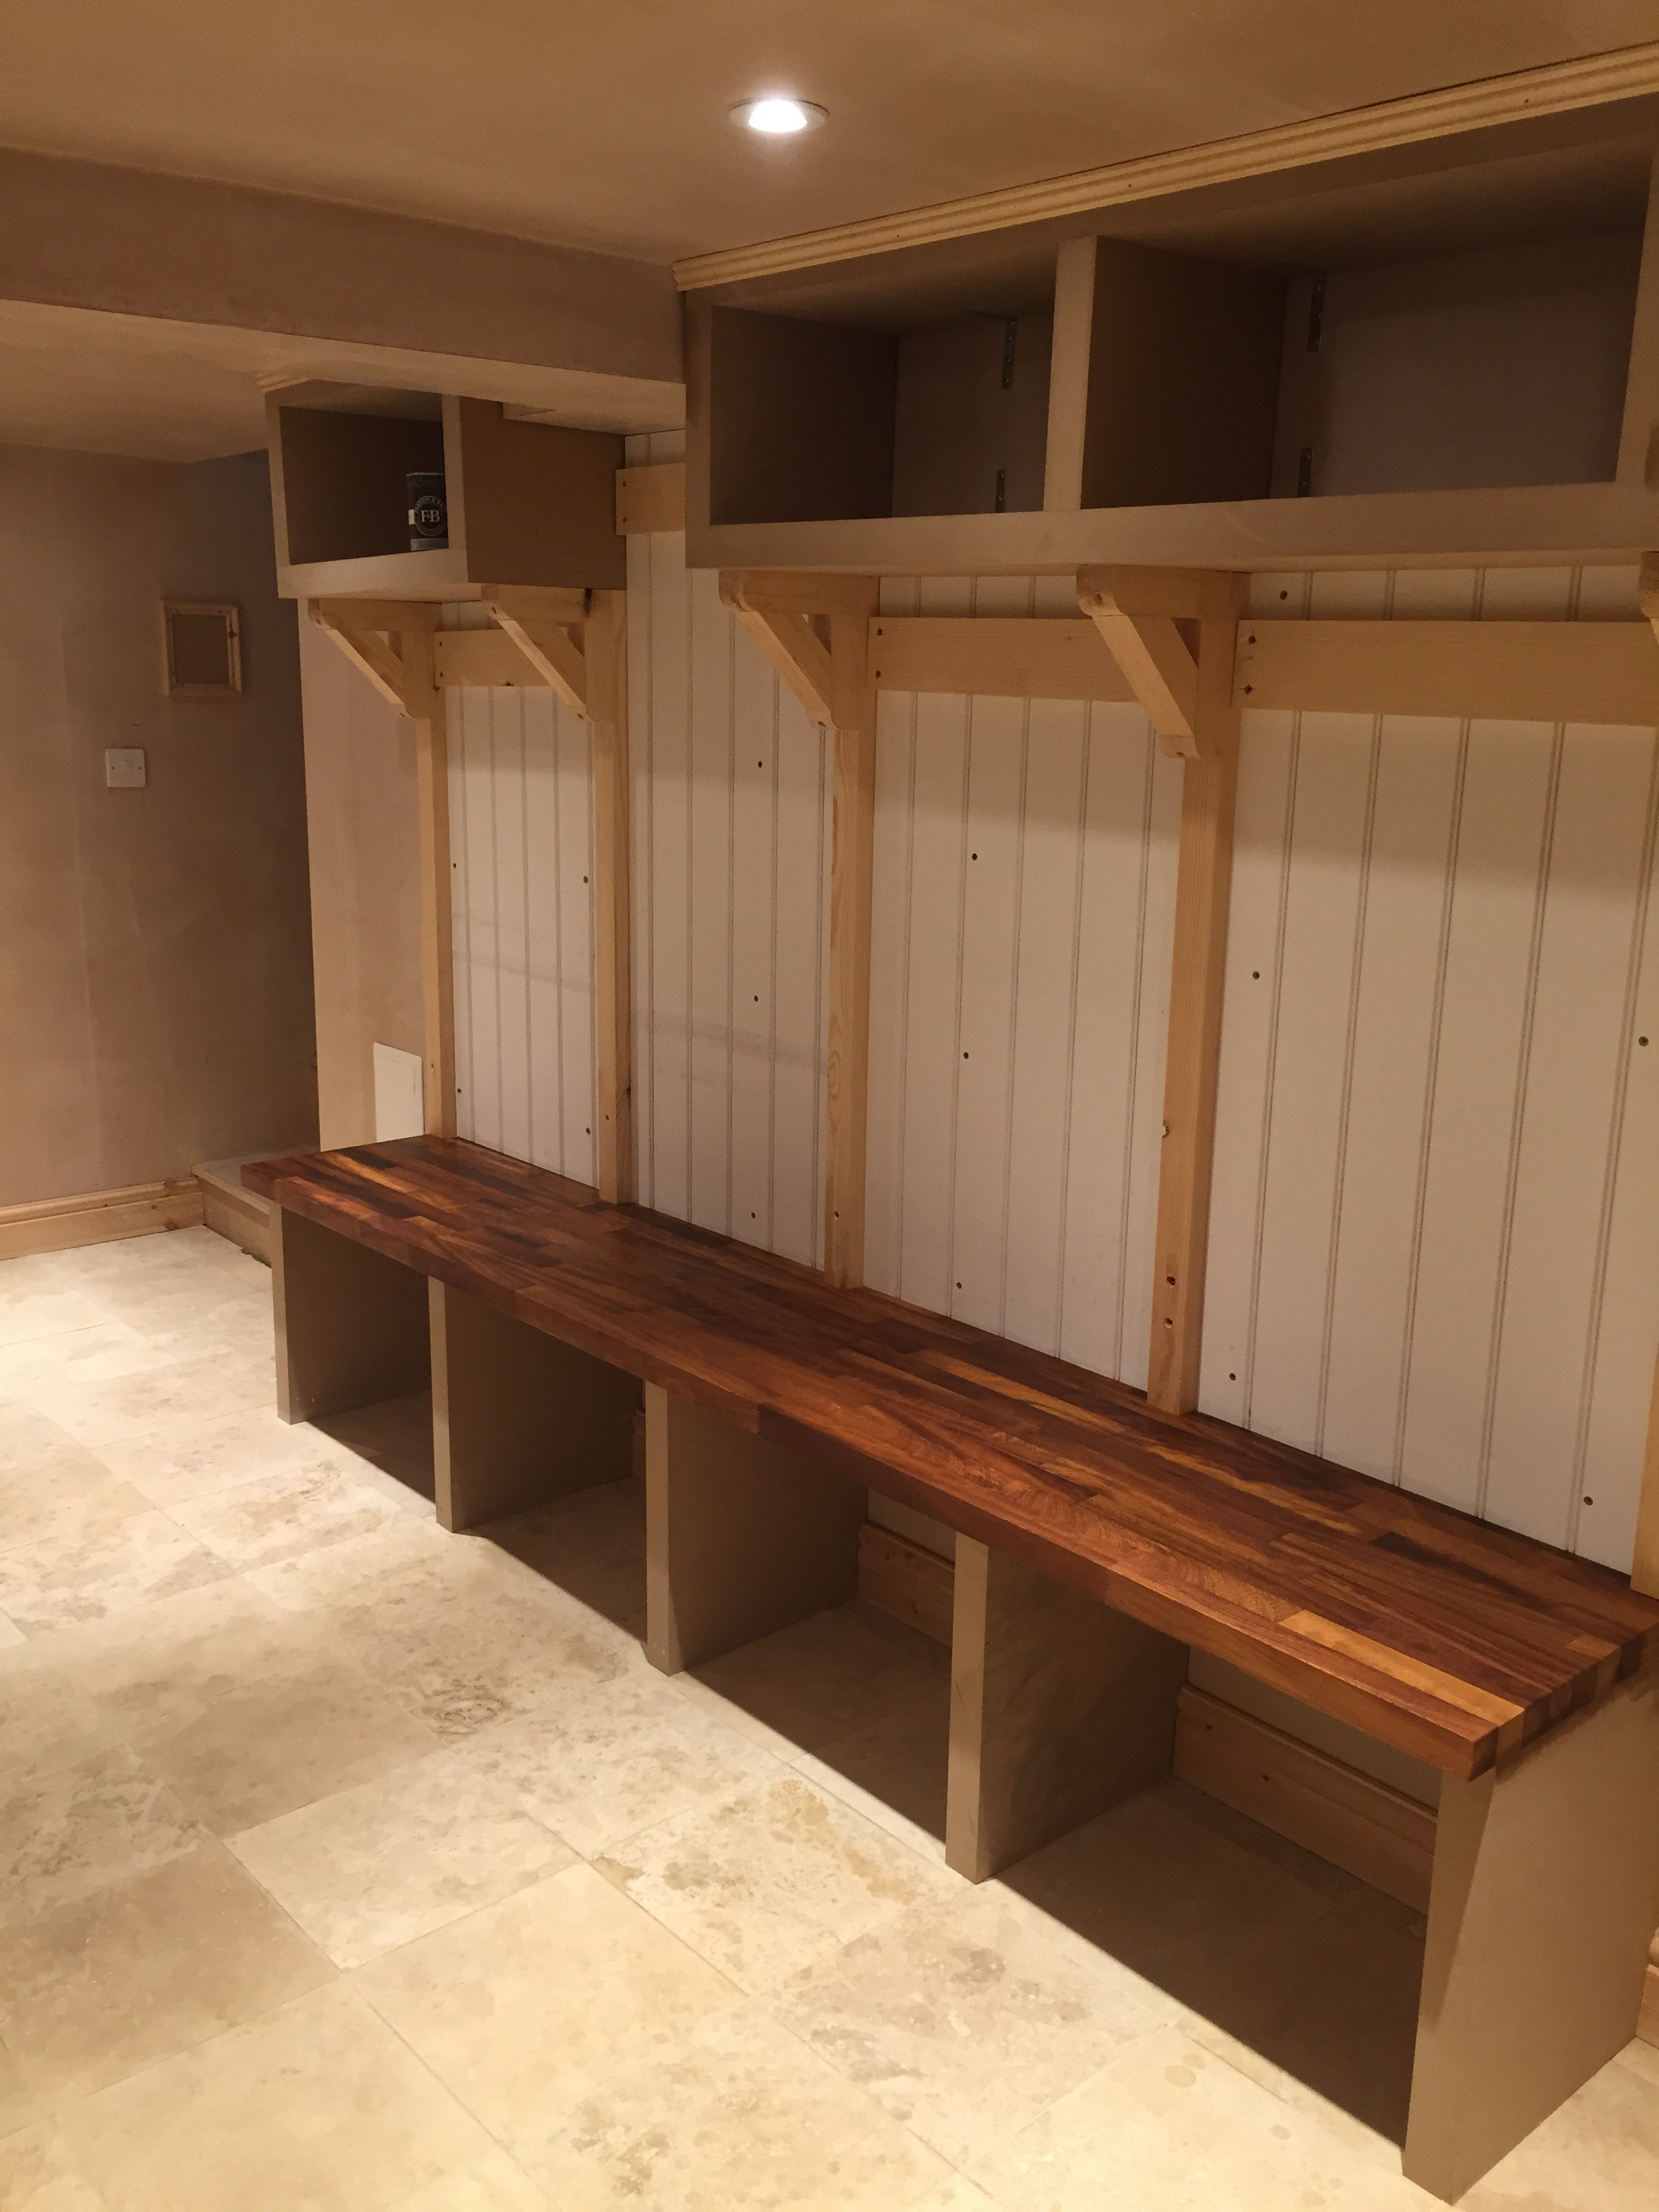 Basement fit out to be boot room & utility room